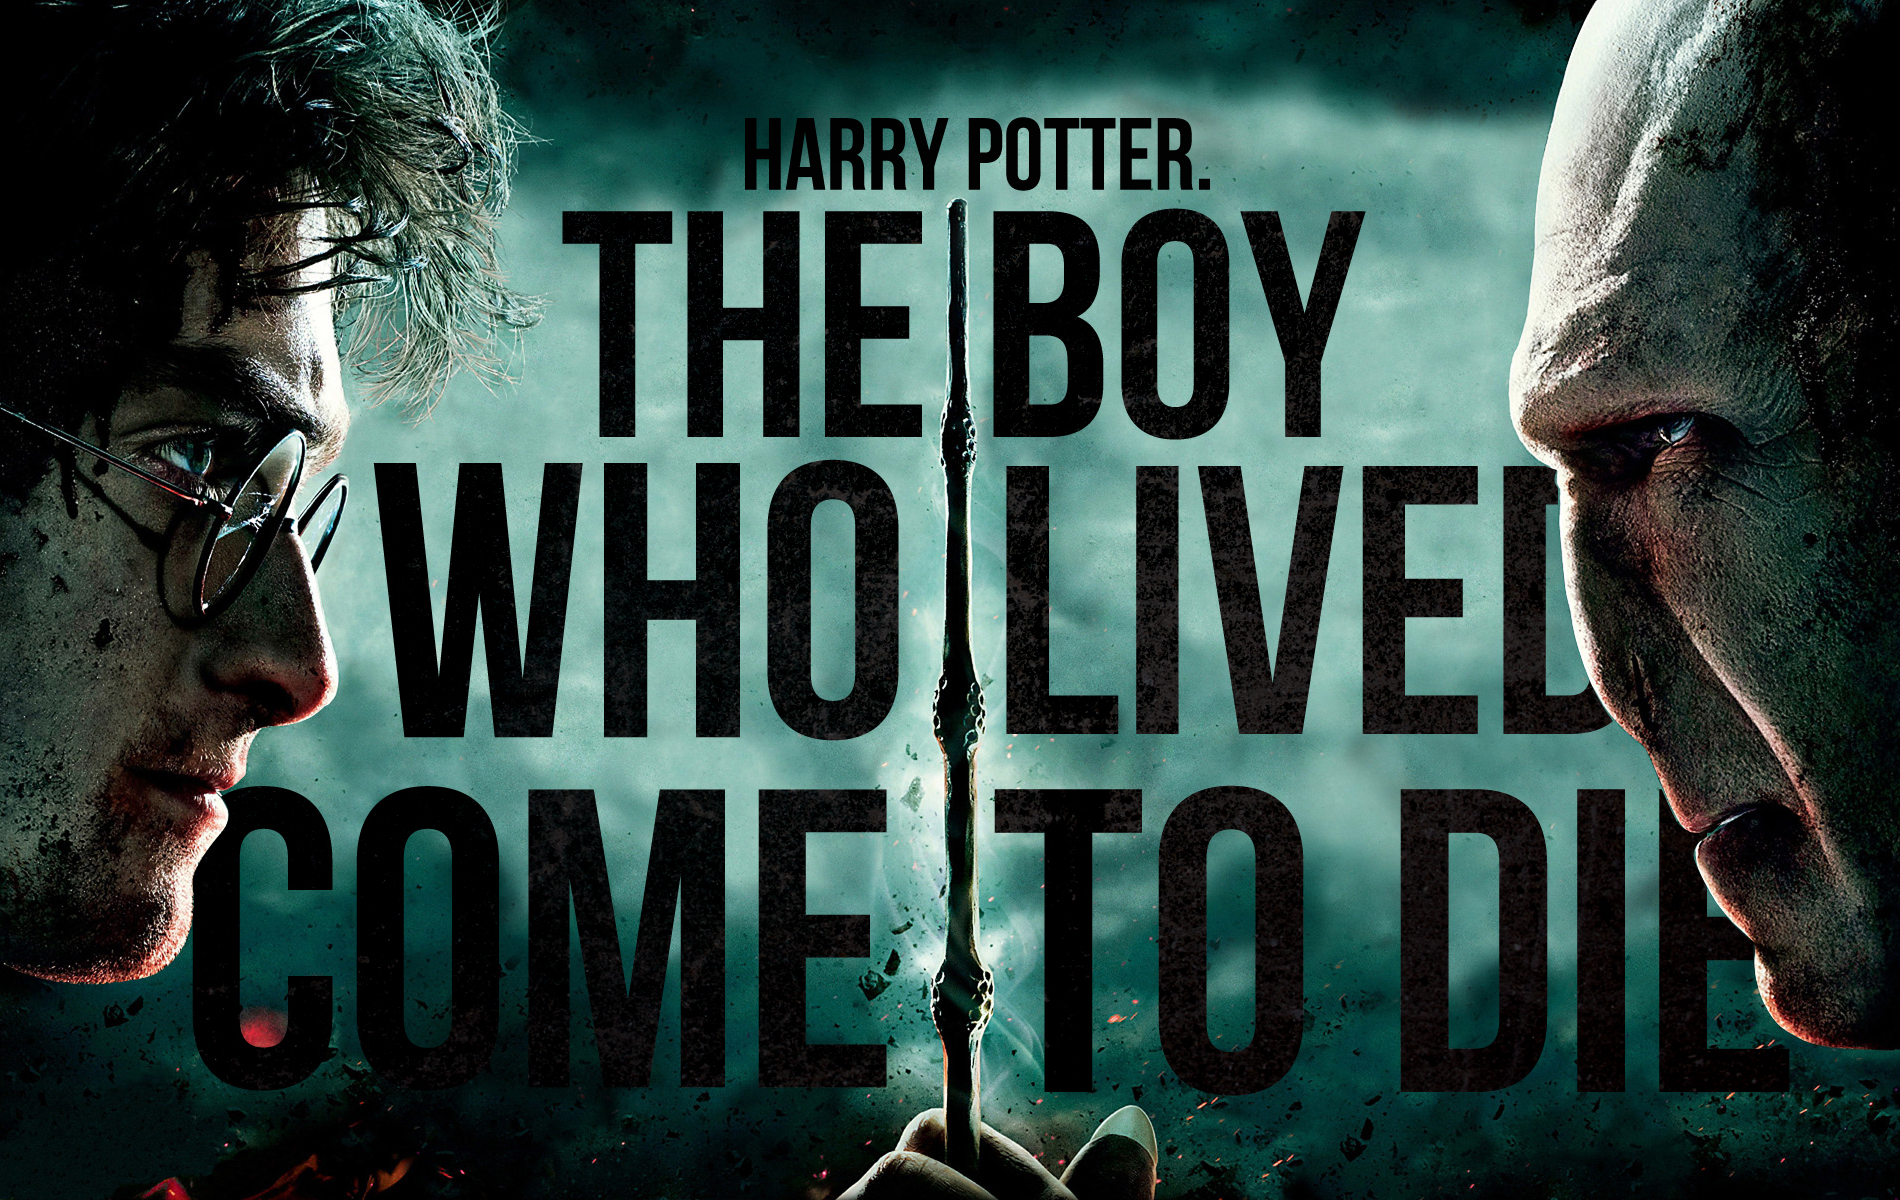 Free Download Harry Potter And The Deathly Hallows Part 2 Computer